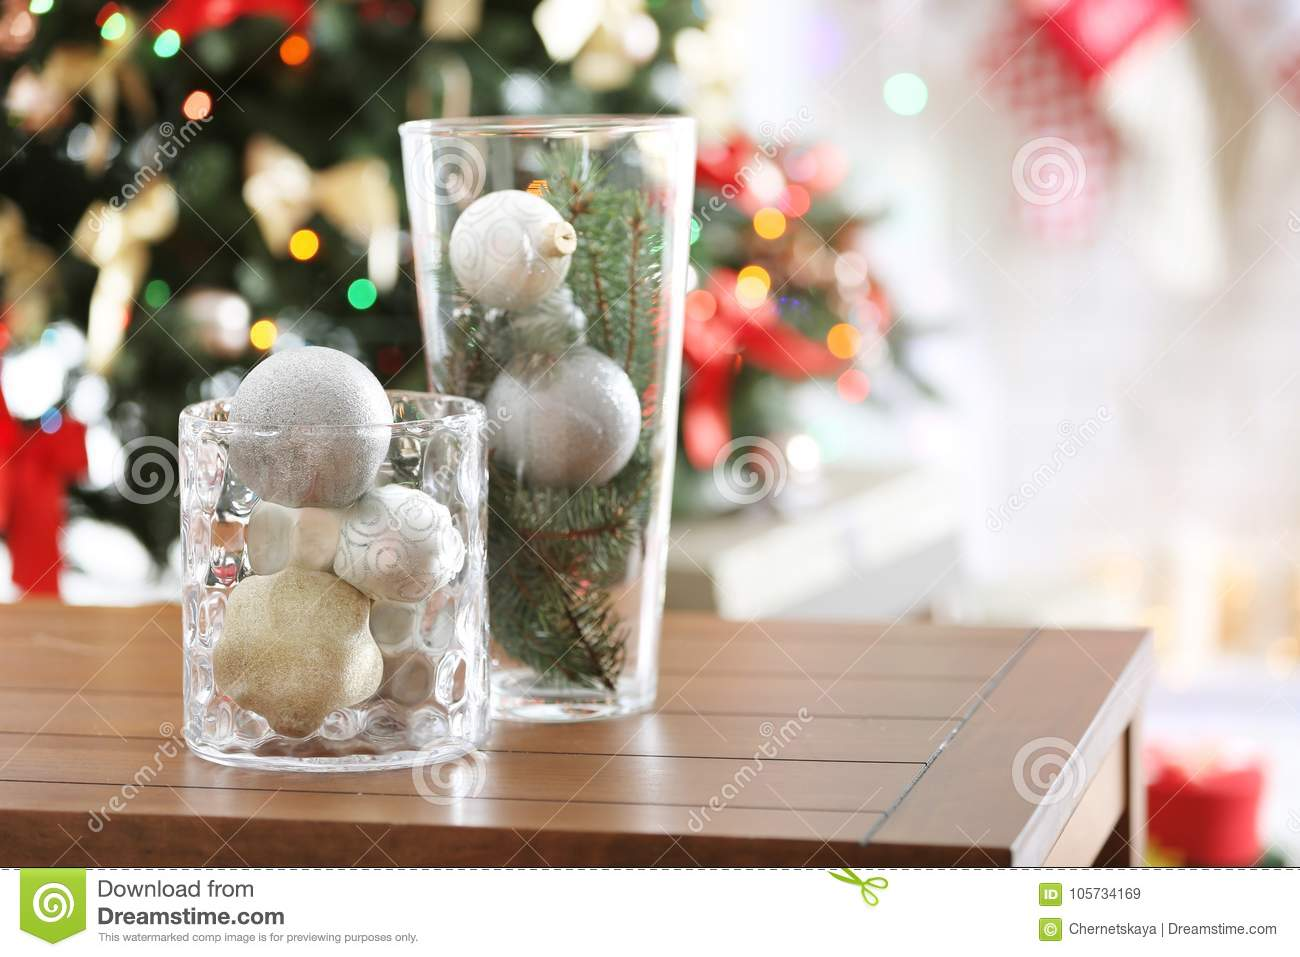 Glass vases with Christmas decoration on table